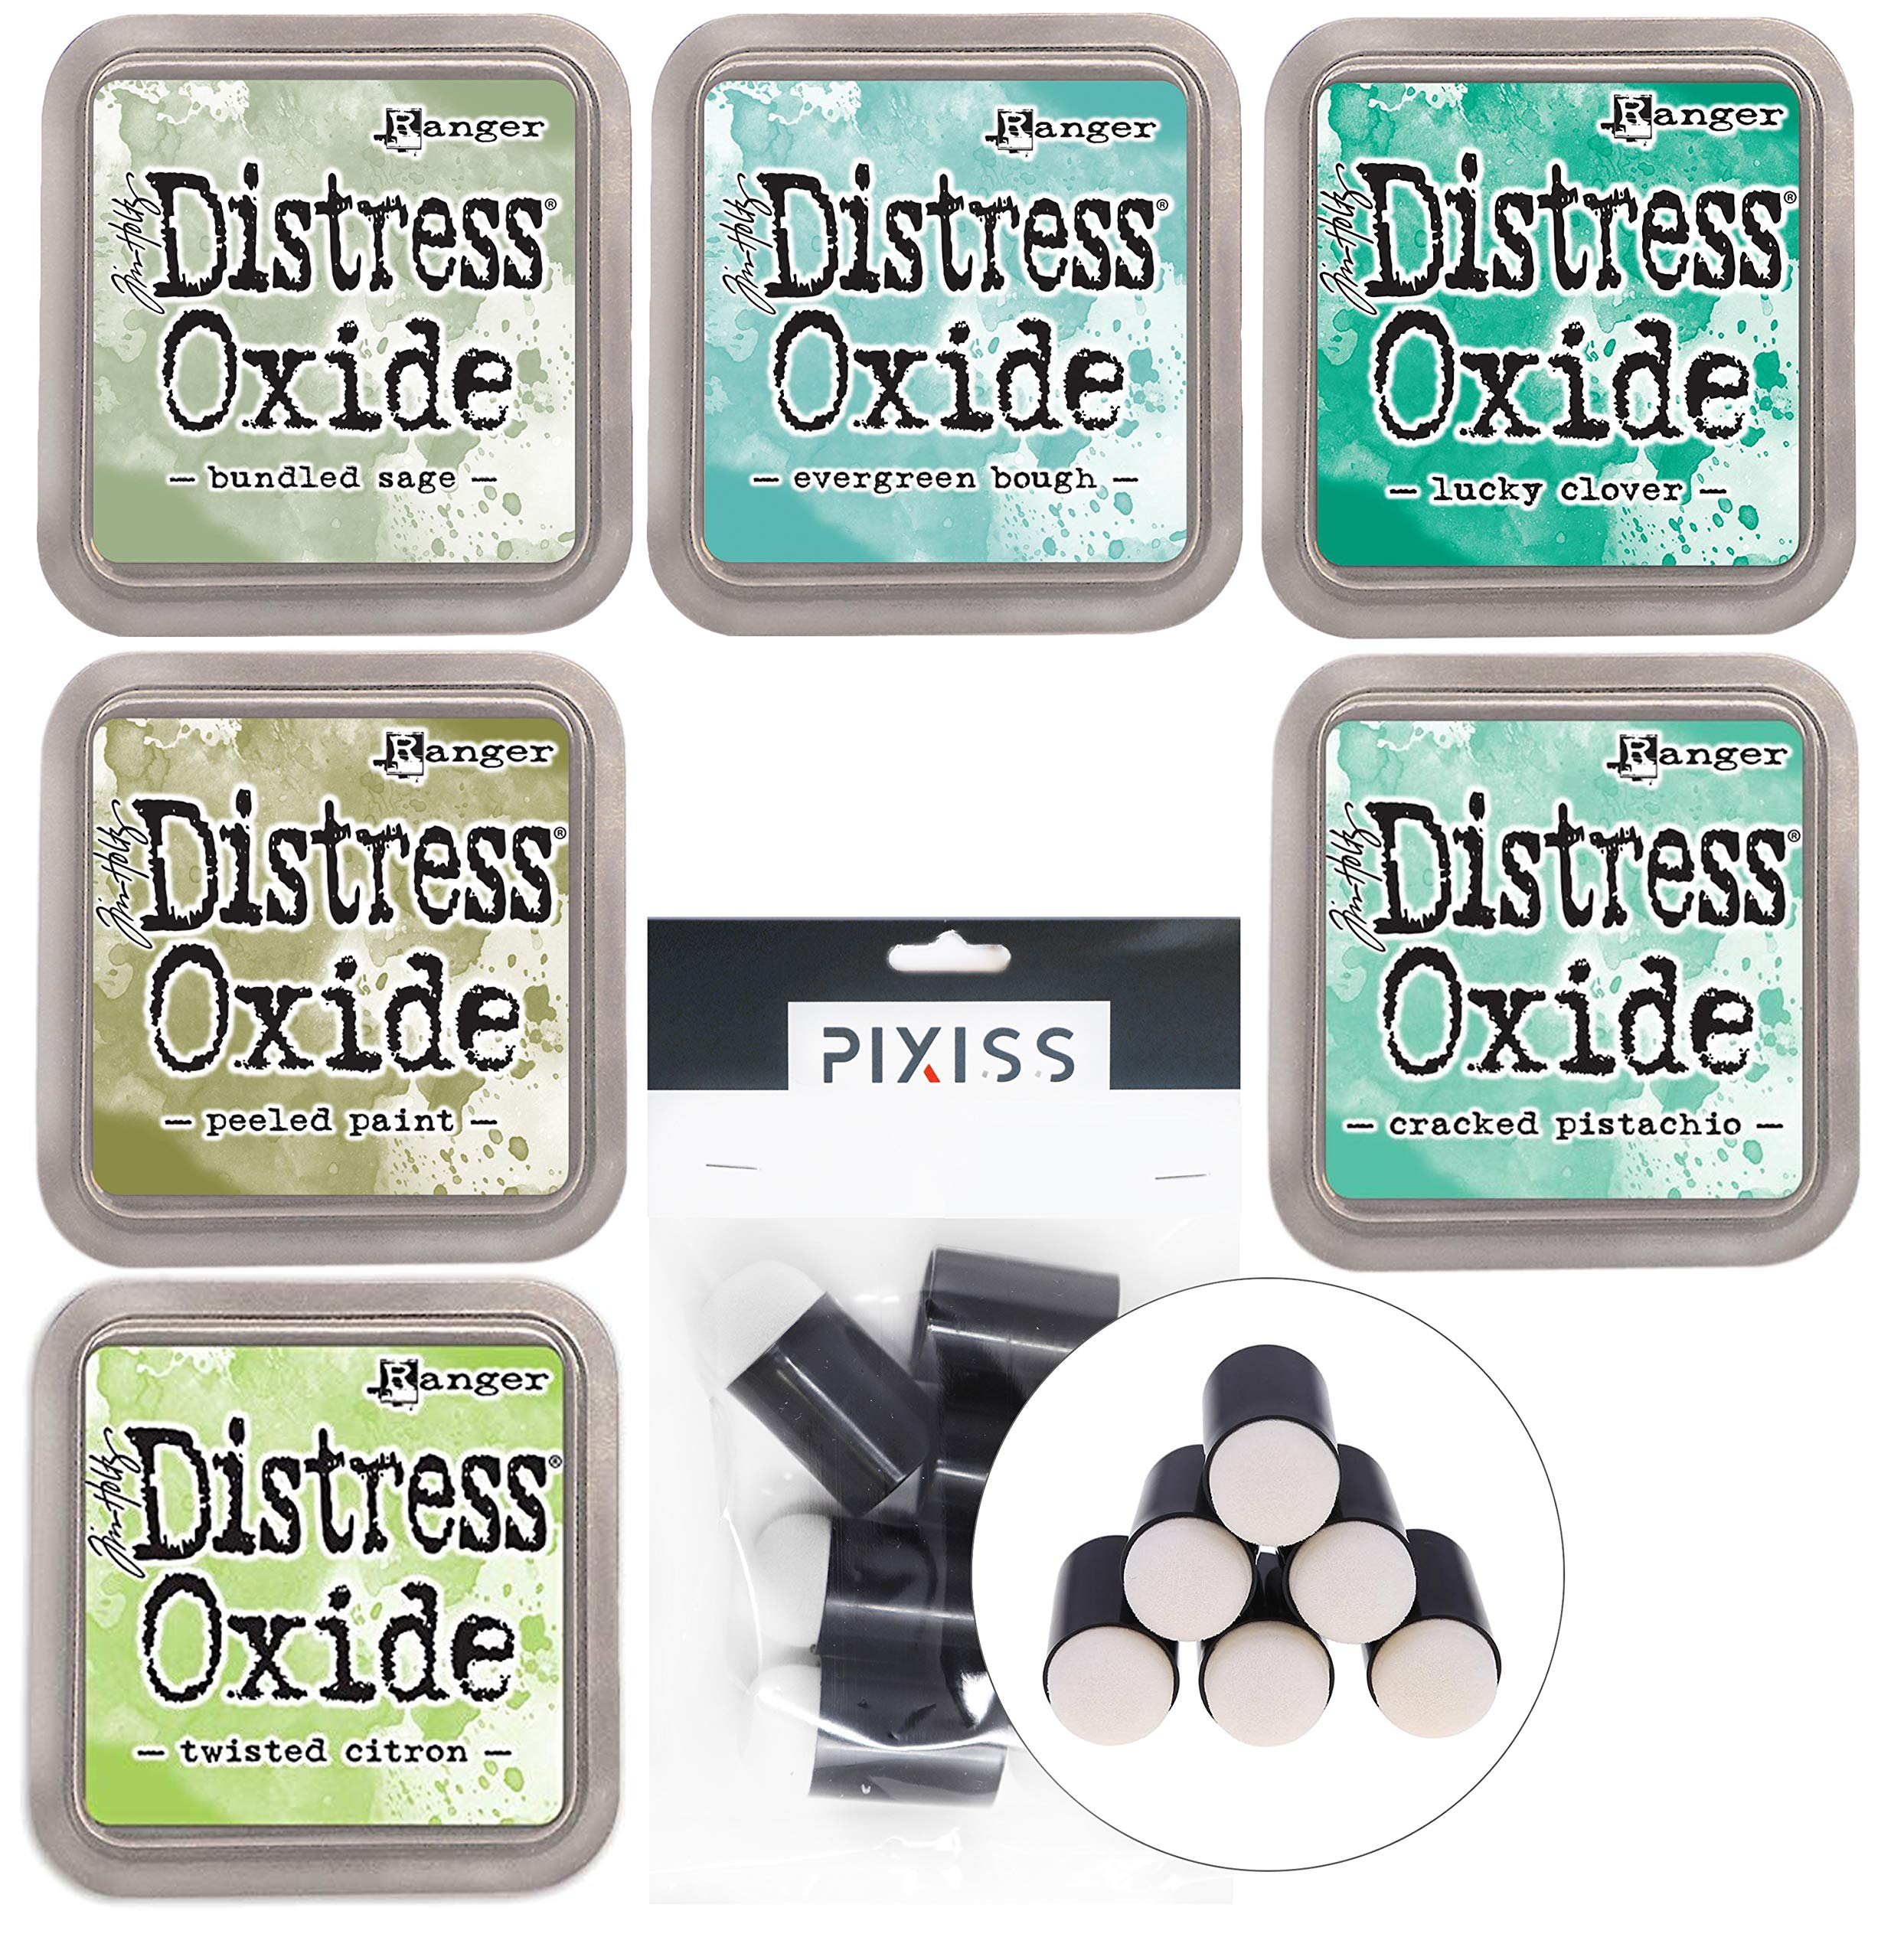 Ranger Distress Oxides Ink Pad 6 Color Bundle Evergreen Bough, Bundled Sage, Lucky Clover, Peeled Paint, Cracked Pistachio, Twisted Citron with 6 Piece Pixiss Daubers